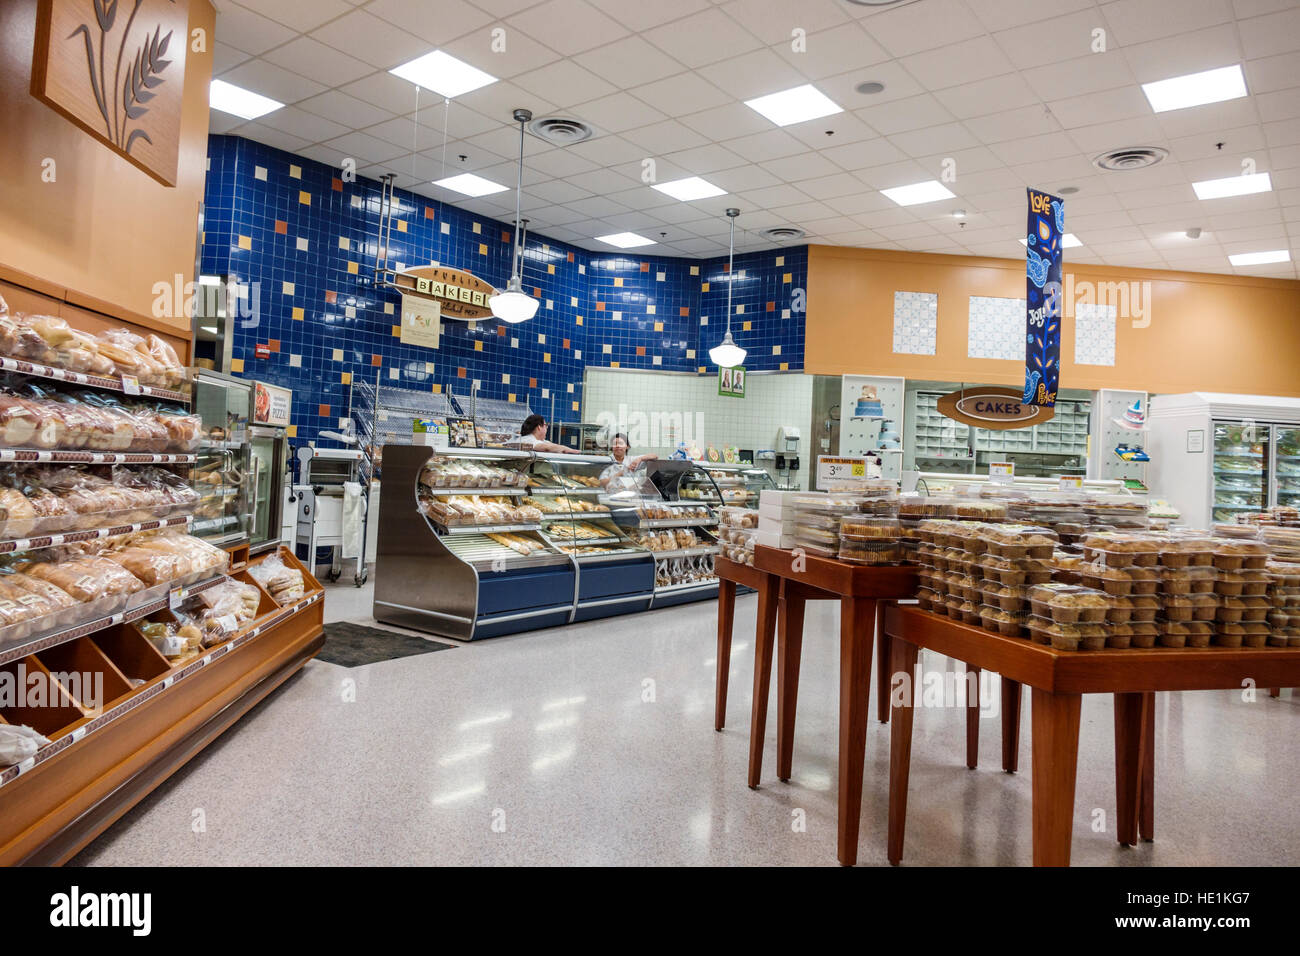 Fort Myers Florida Ft Publix supermarket grocery store interior